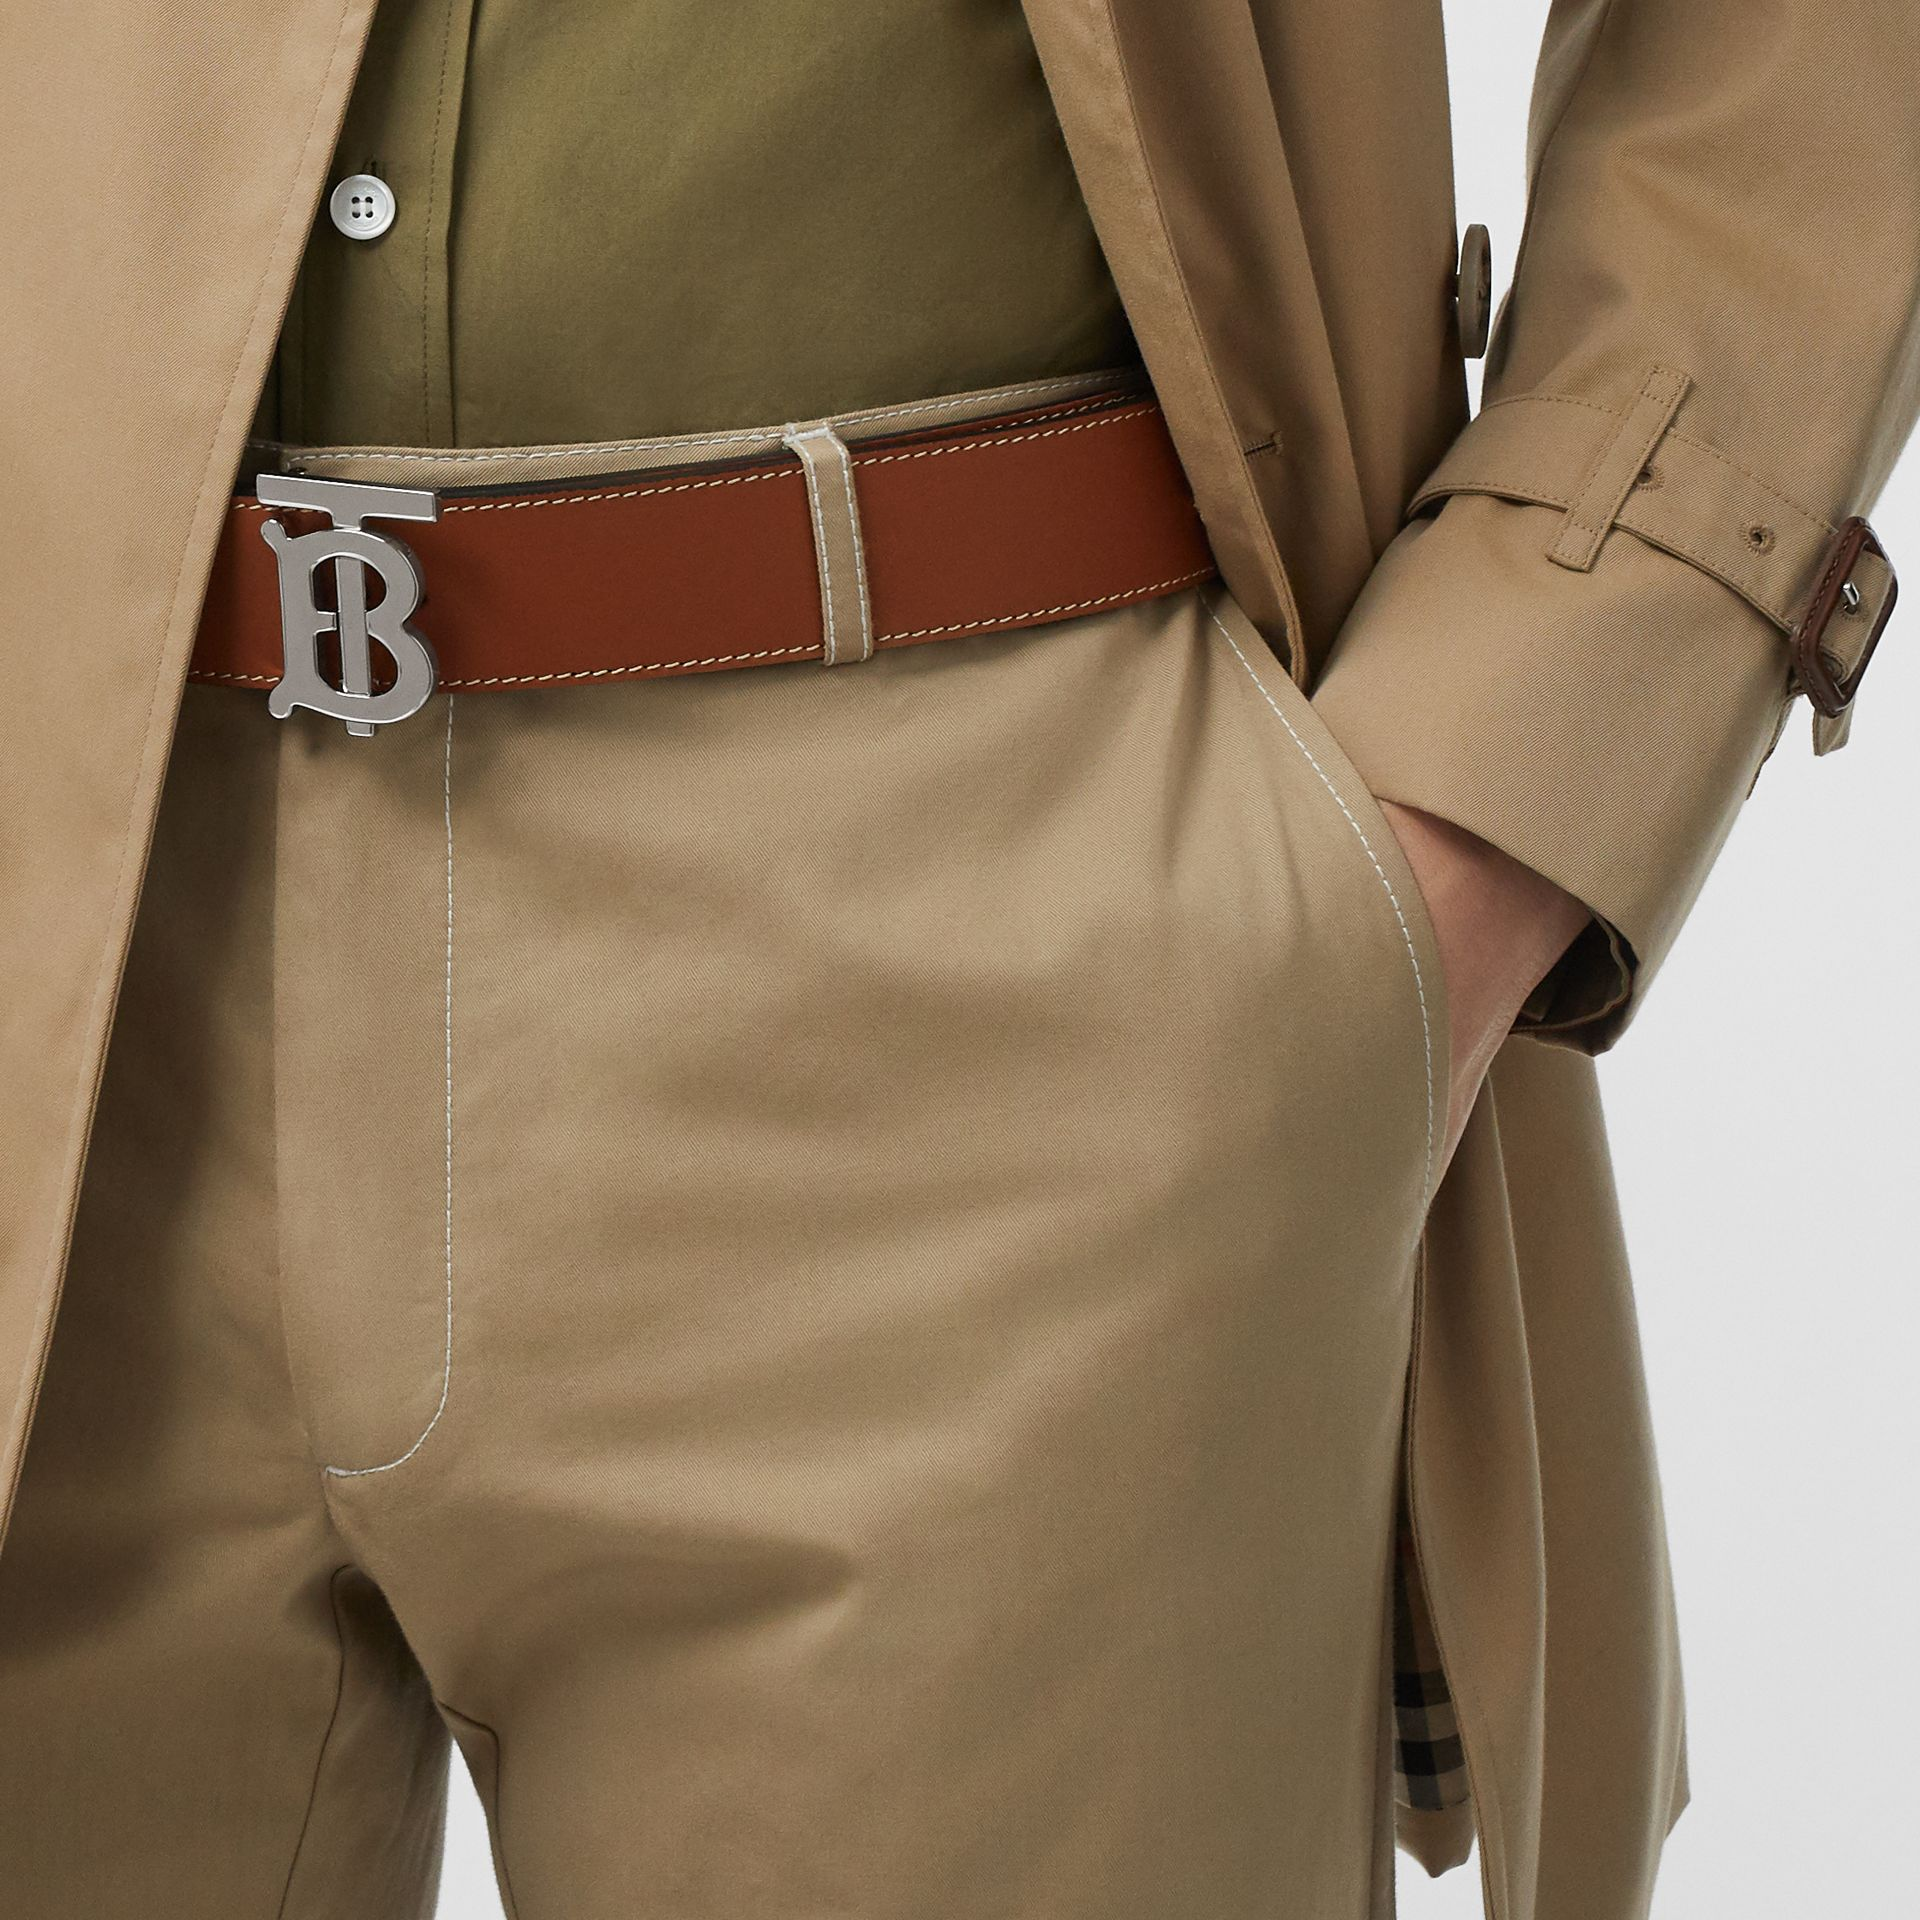 Reversible Monogram Motif Leather Belt in Tan/black - Men | Burberry Australia - gallery image 2